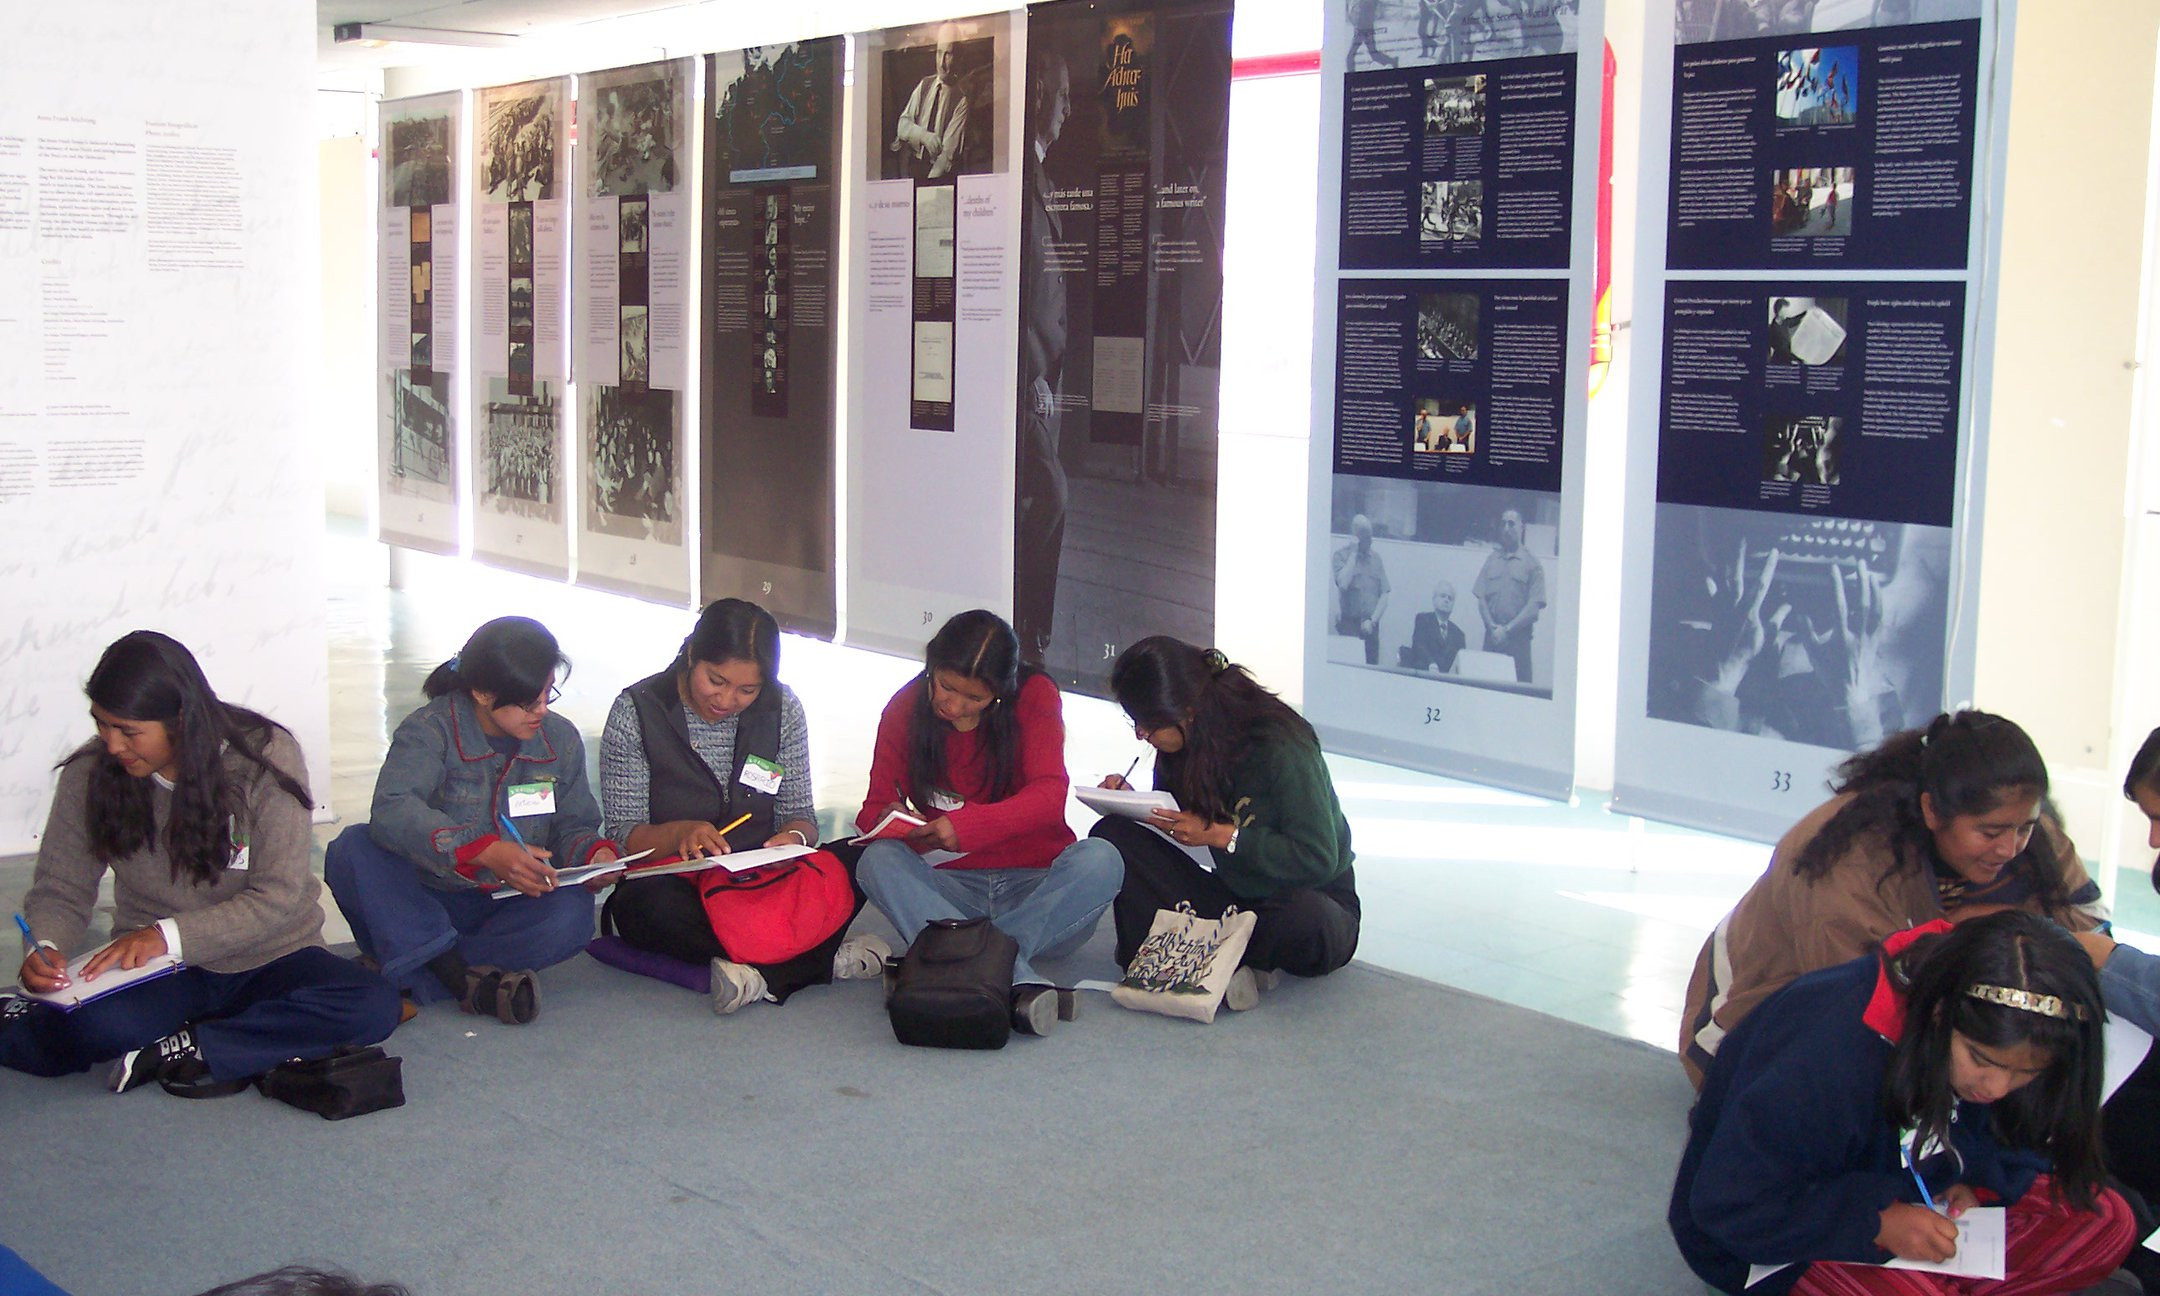 Anne Frank a History for today exhibition, La Paz, Bolivia (2005)